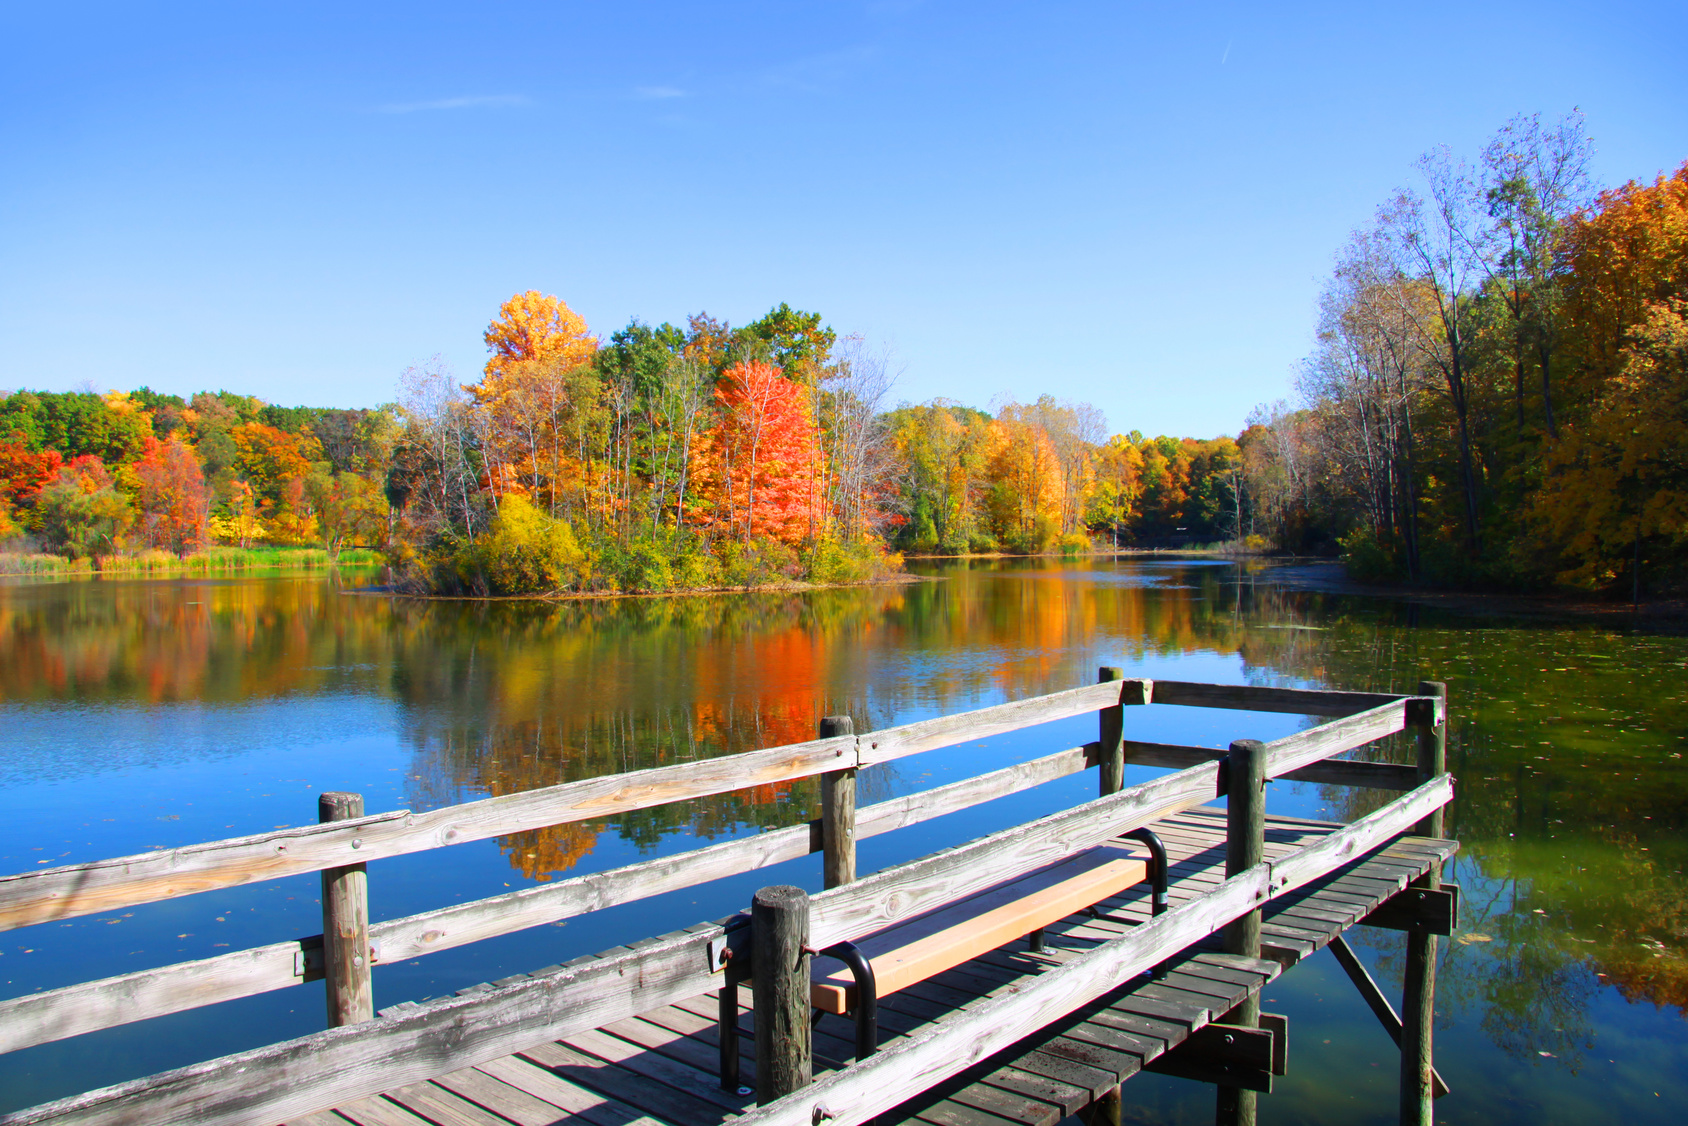 The beauty of autumn doesn't last forever, but the beauty of alkaline water certainly will!